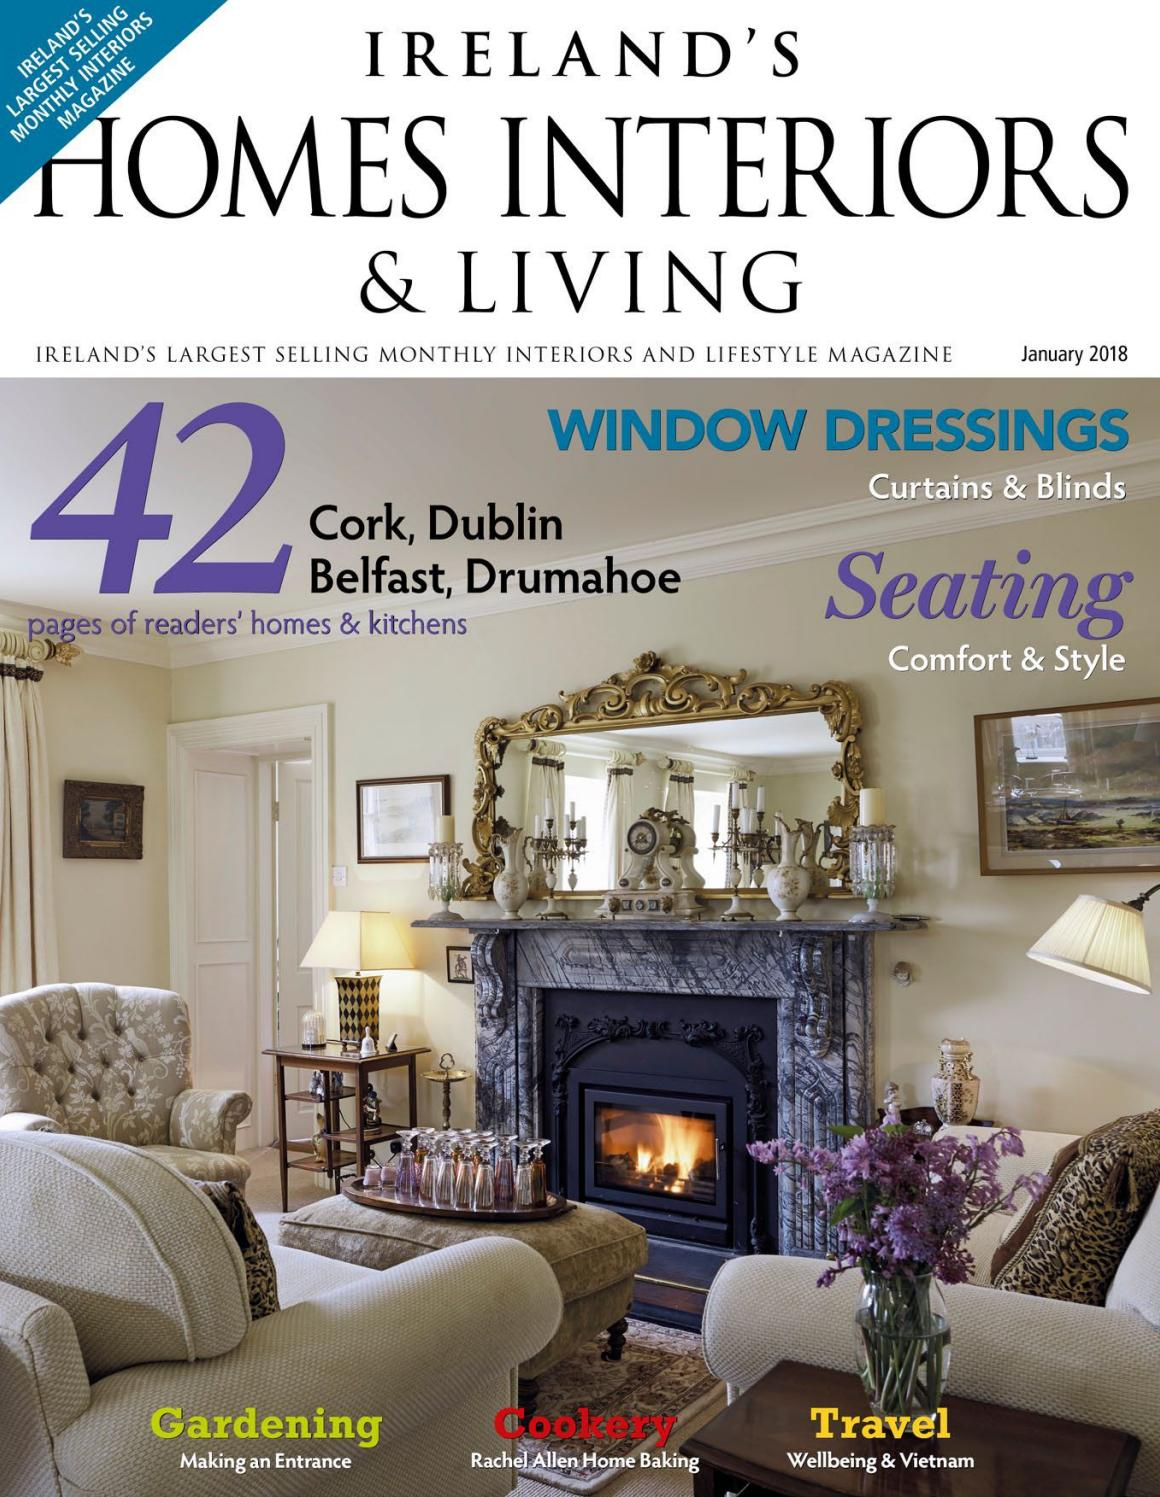 Kitchen Curtains Littlewoods Ireland S Homes Interiors And Living February 2018